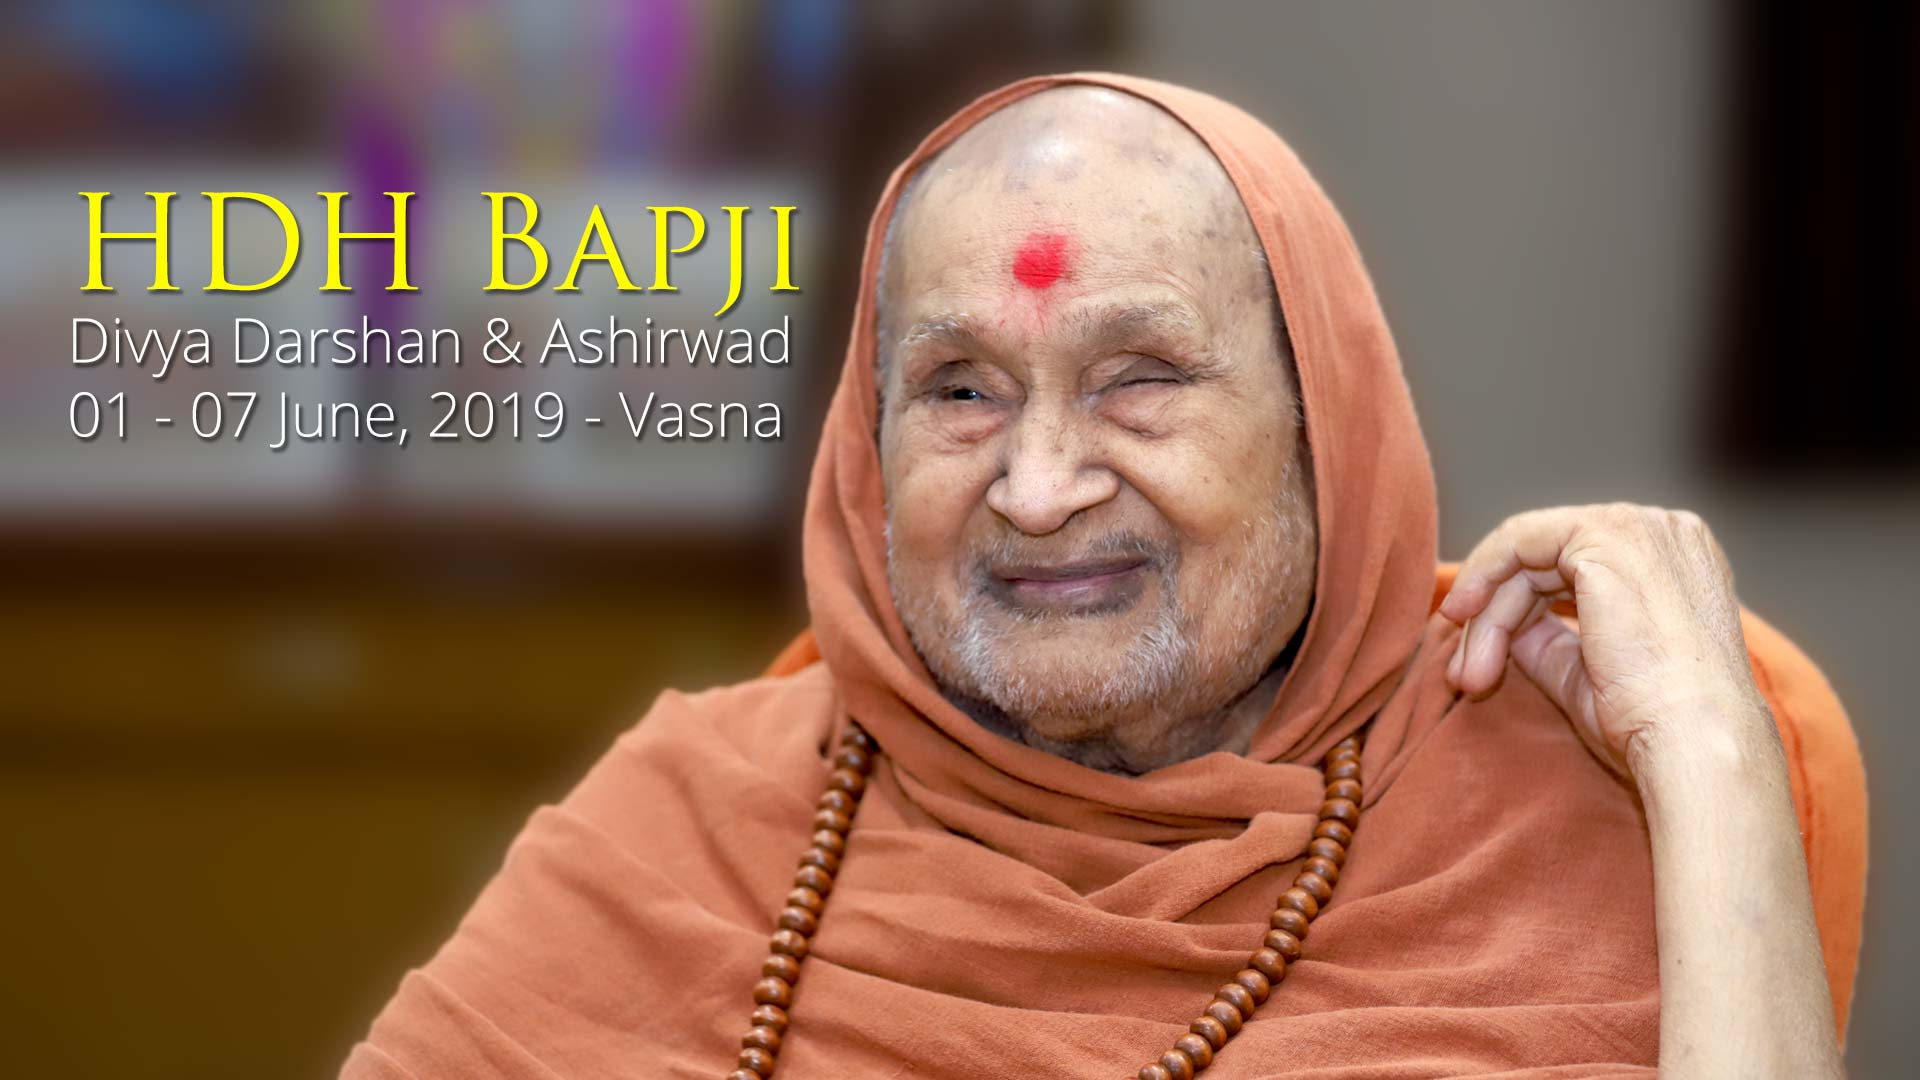 HDH Bapji Divya Darshan-Ashirwad | 01 to 07 June, 2019